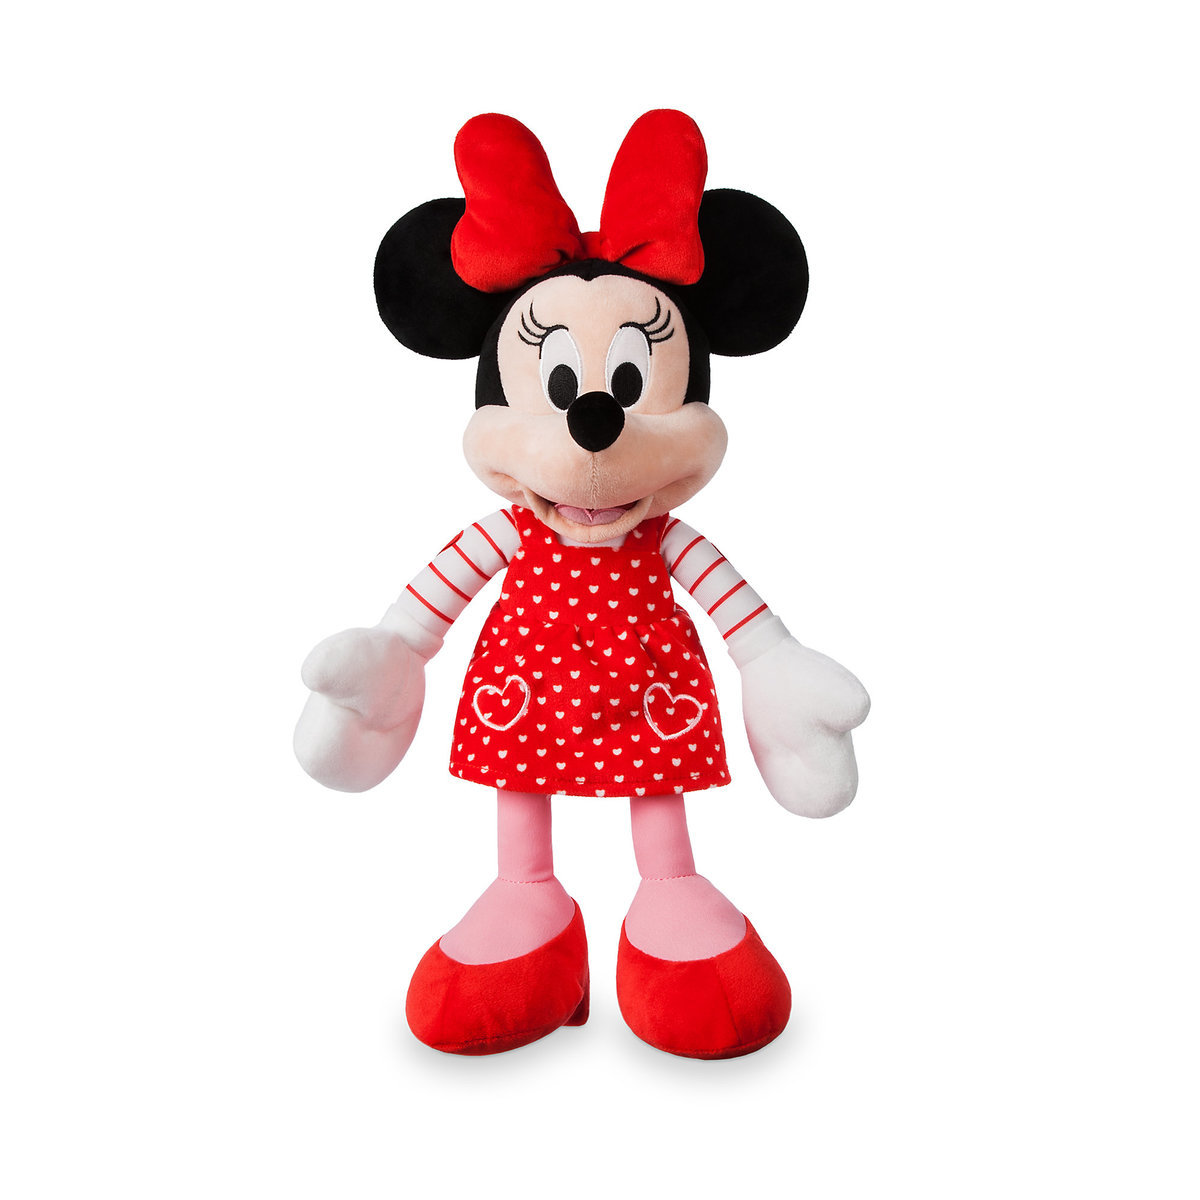 d7d6318a667 Product Image of Minnie Mouse Sweetheart Plush - Small - 15     1